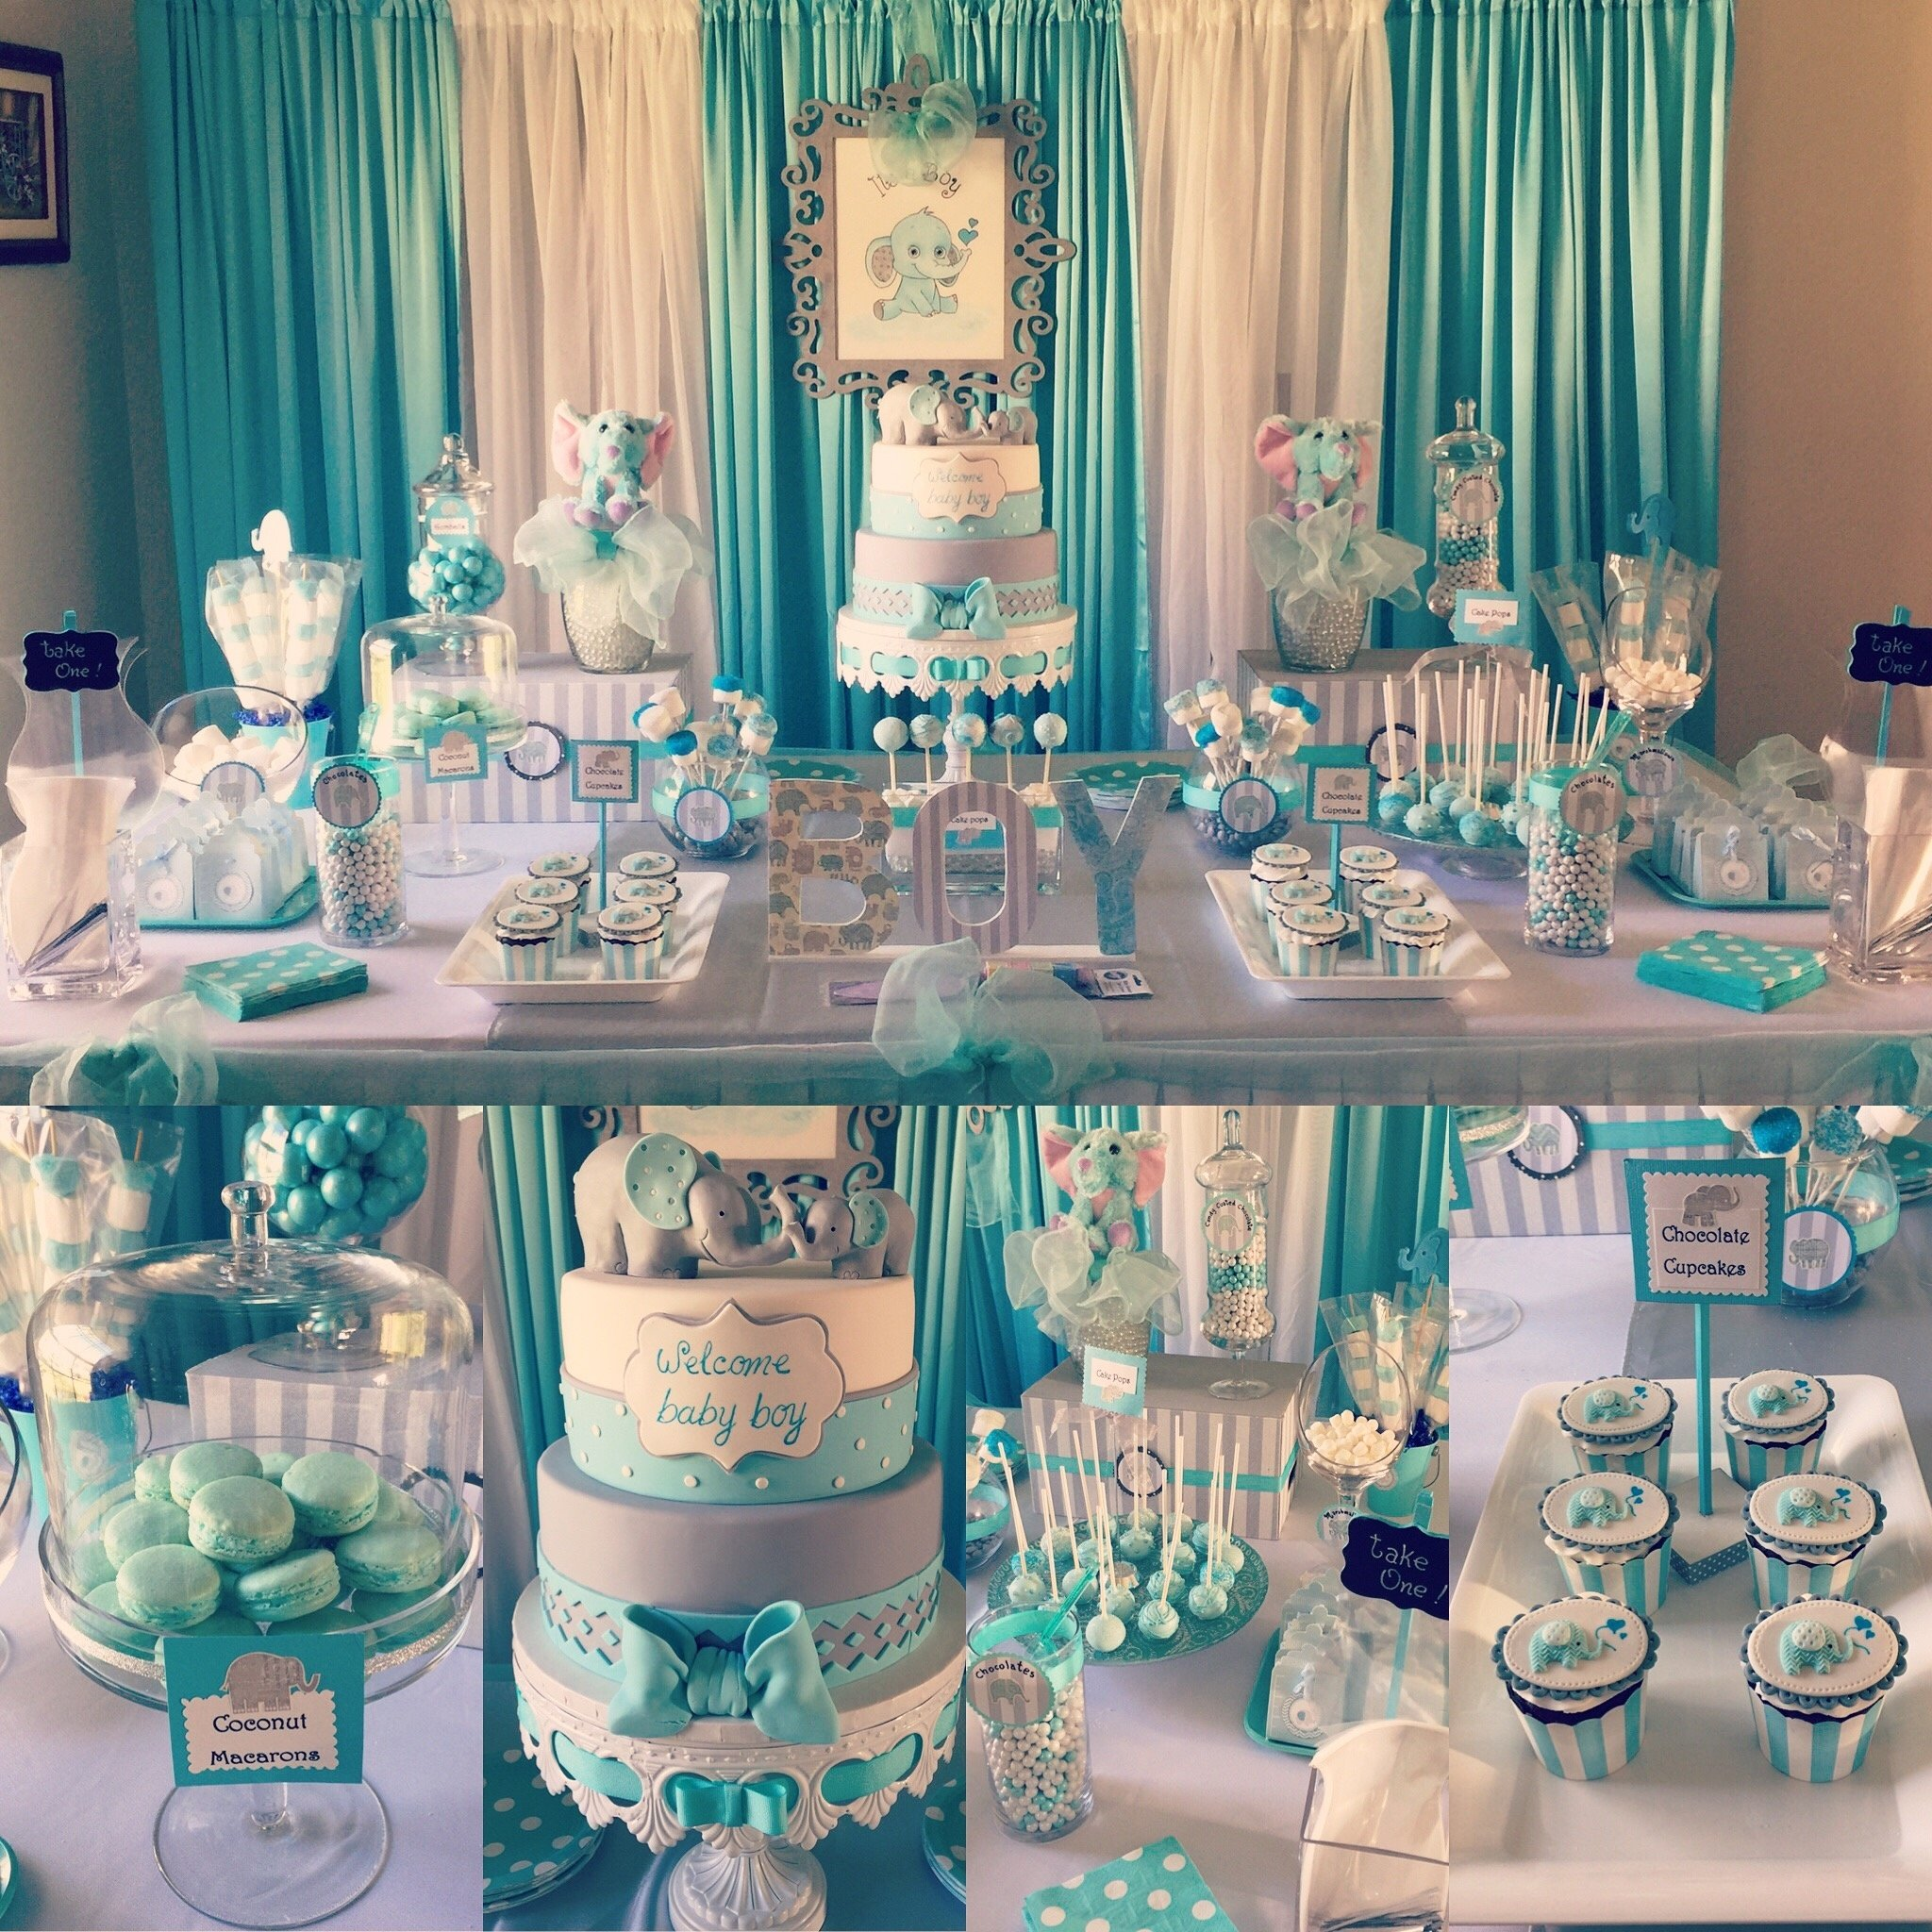 10 Great Ideas For Baby Boy Shower fresh ideas baby boy shower decorations lovely elephant theme party 2021